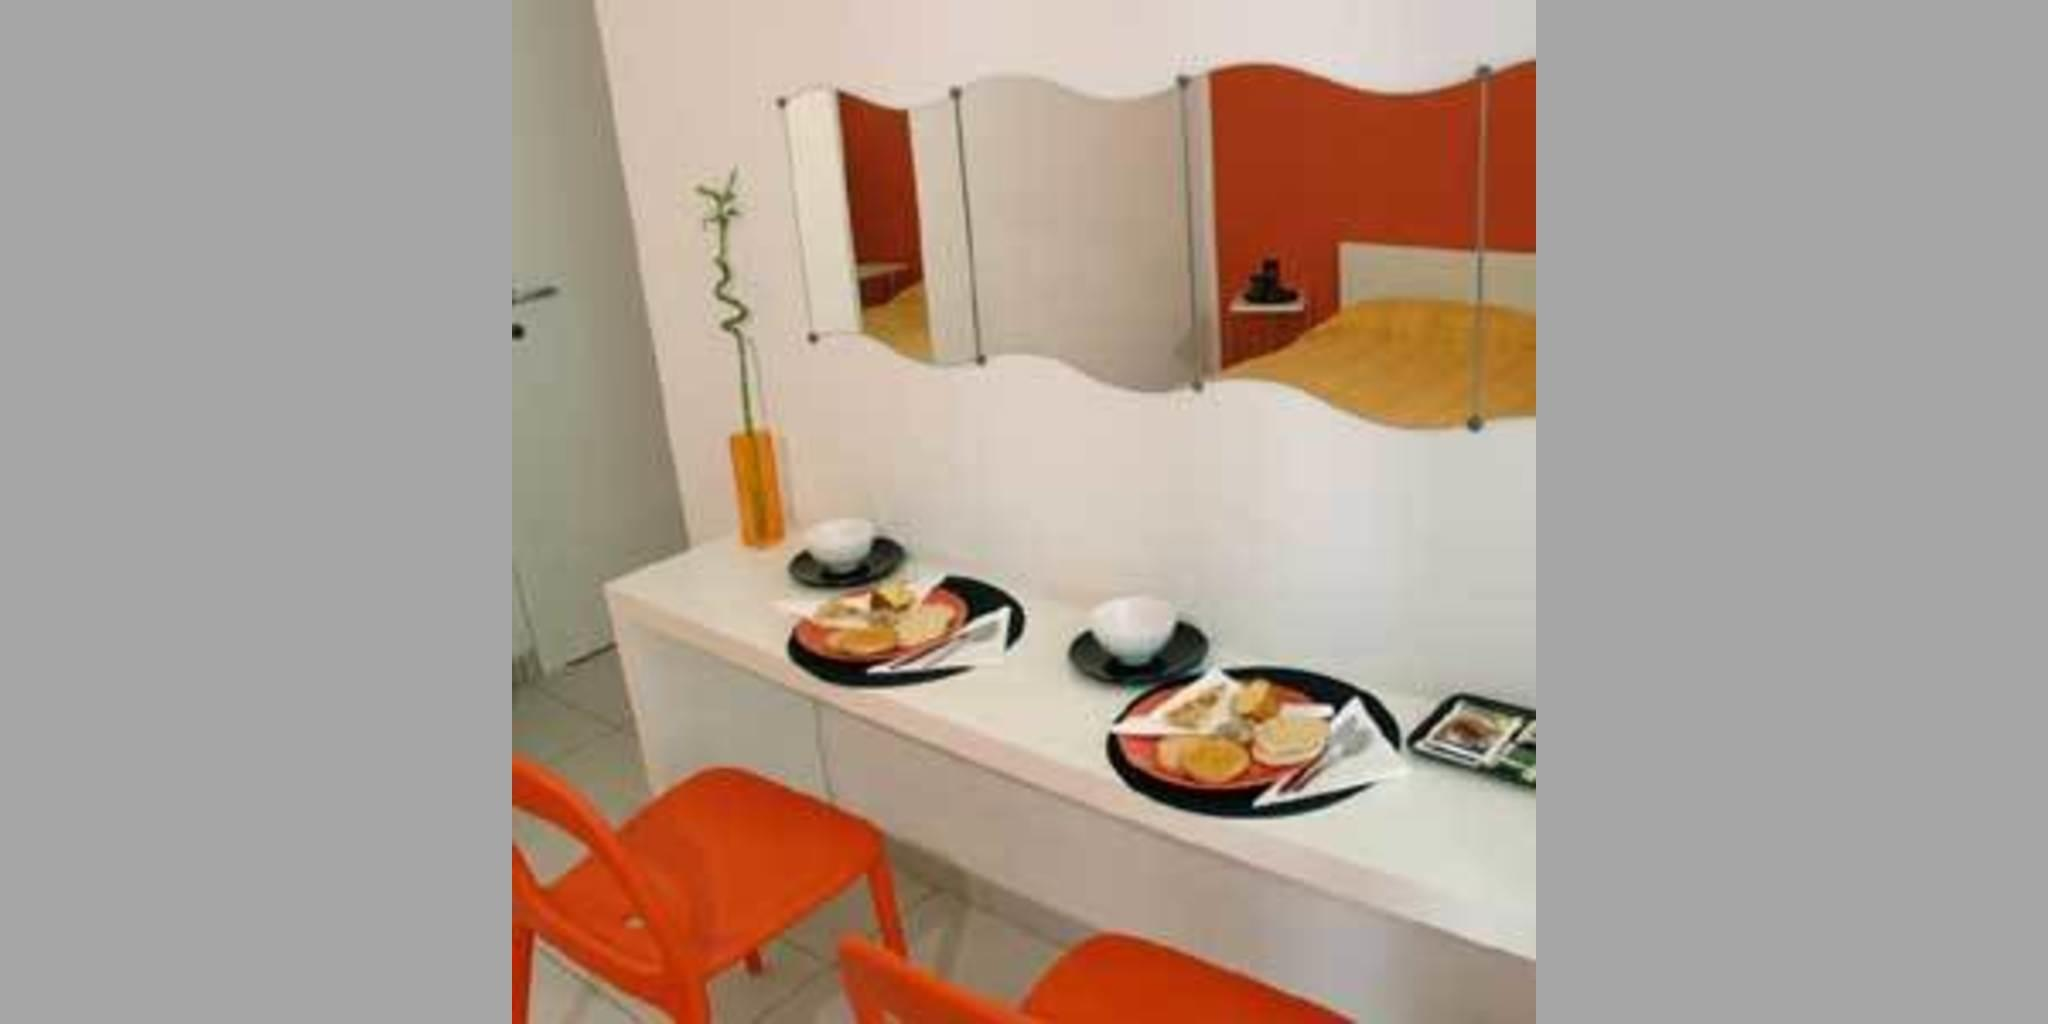 Bed & Breakfast Napoli - Napoli  Decumani